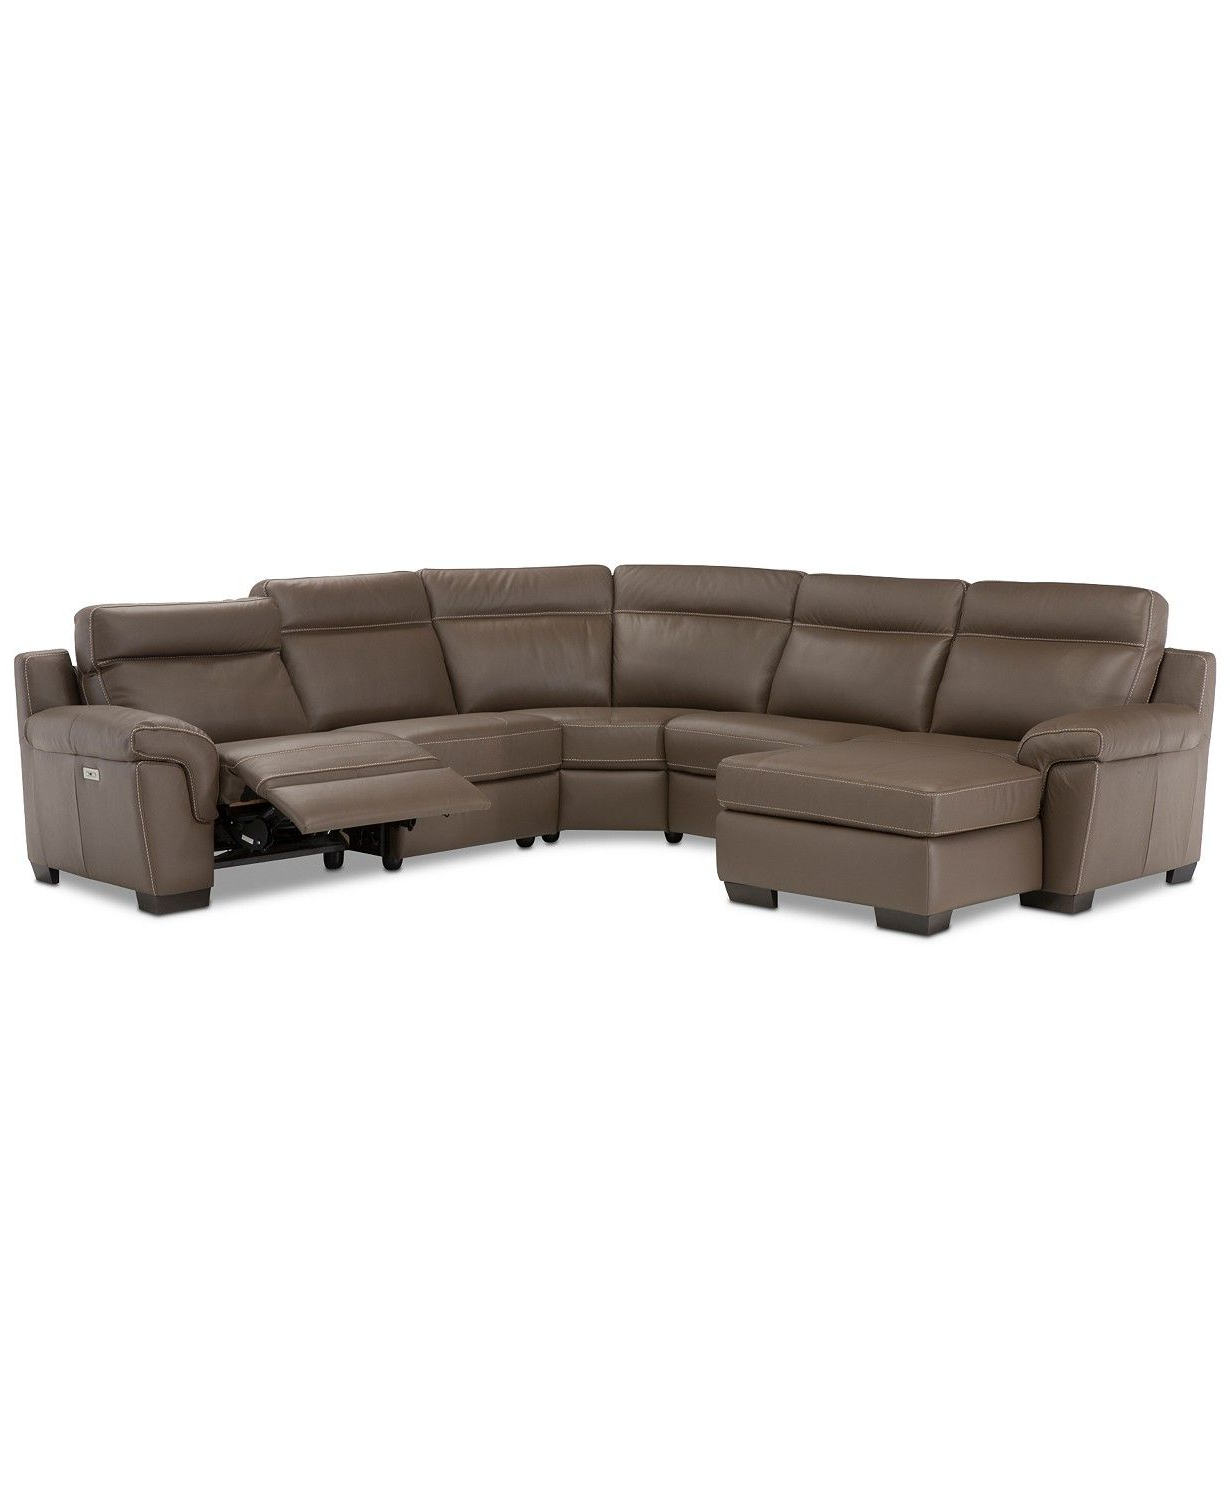 Preferred Clyde Saddle 3 Piece Power Reclining Sectionals With Power Headrest & Usb Within Julius Ii 5 Pc. Leather Chaise Sectional Sofa With 1 Power Recliner (Gallery 2 of 20)